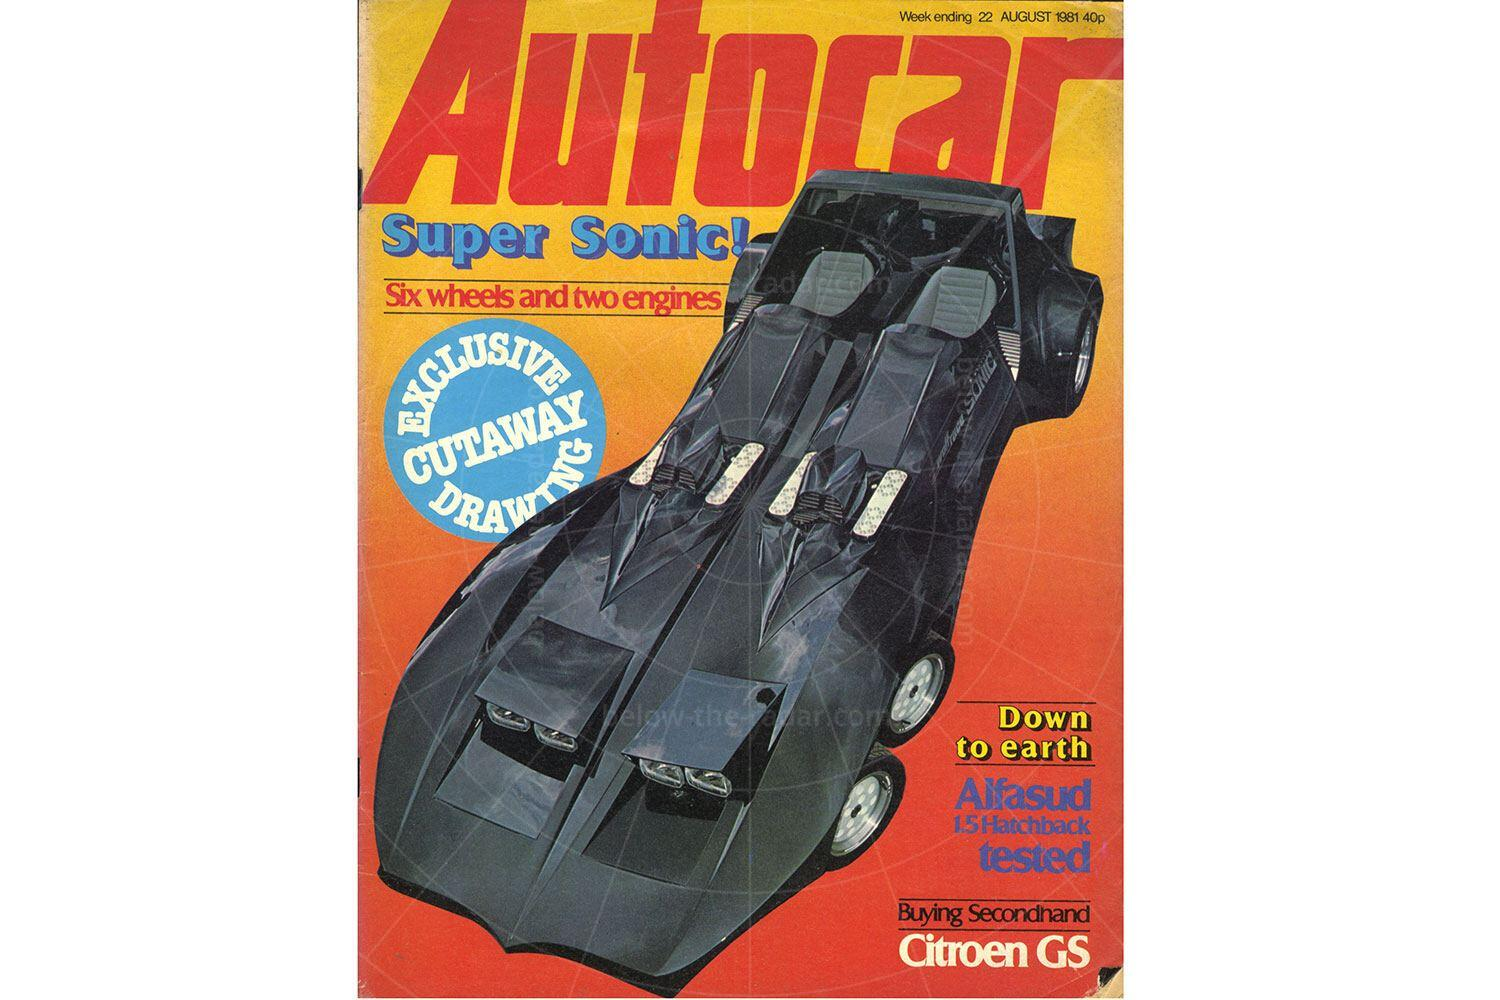 Wolfrace Sonic on the front cover of Autocar Pic: magiccarpics.co.uk | Wolfrace Sonic on the front cover of Autocar